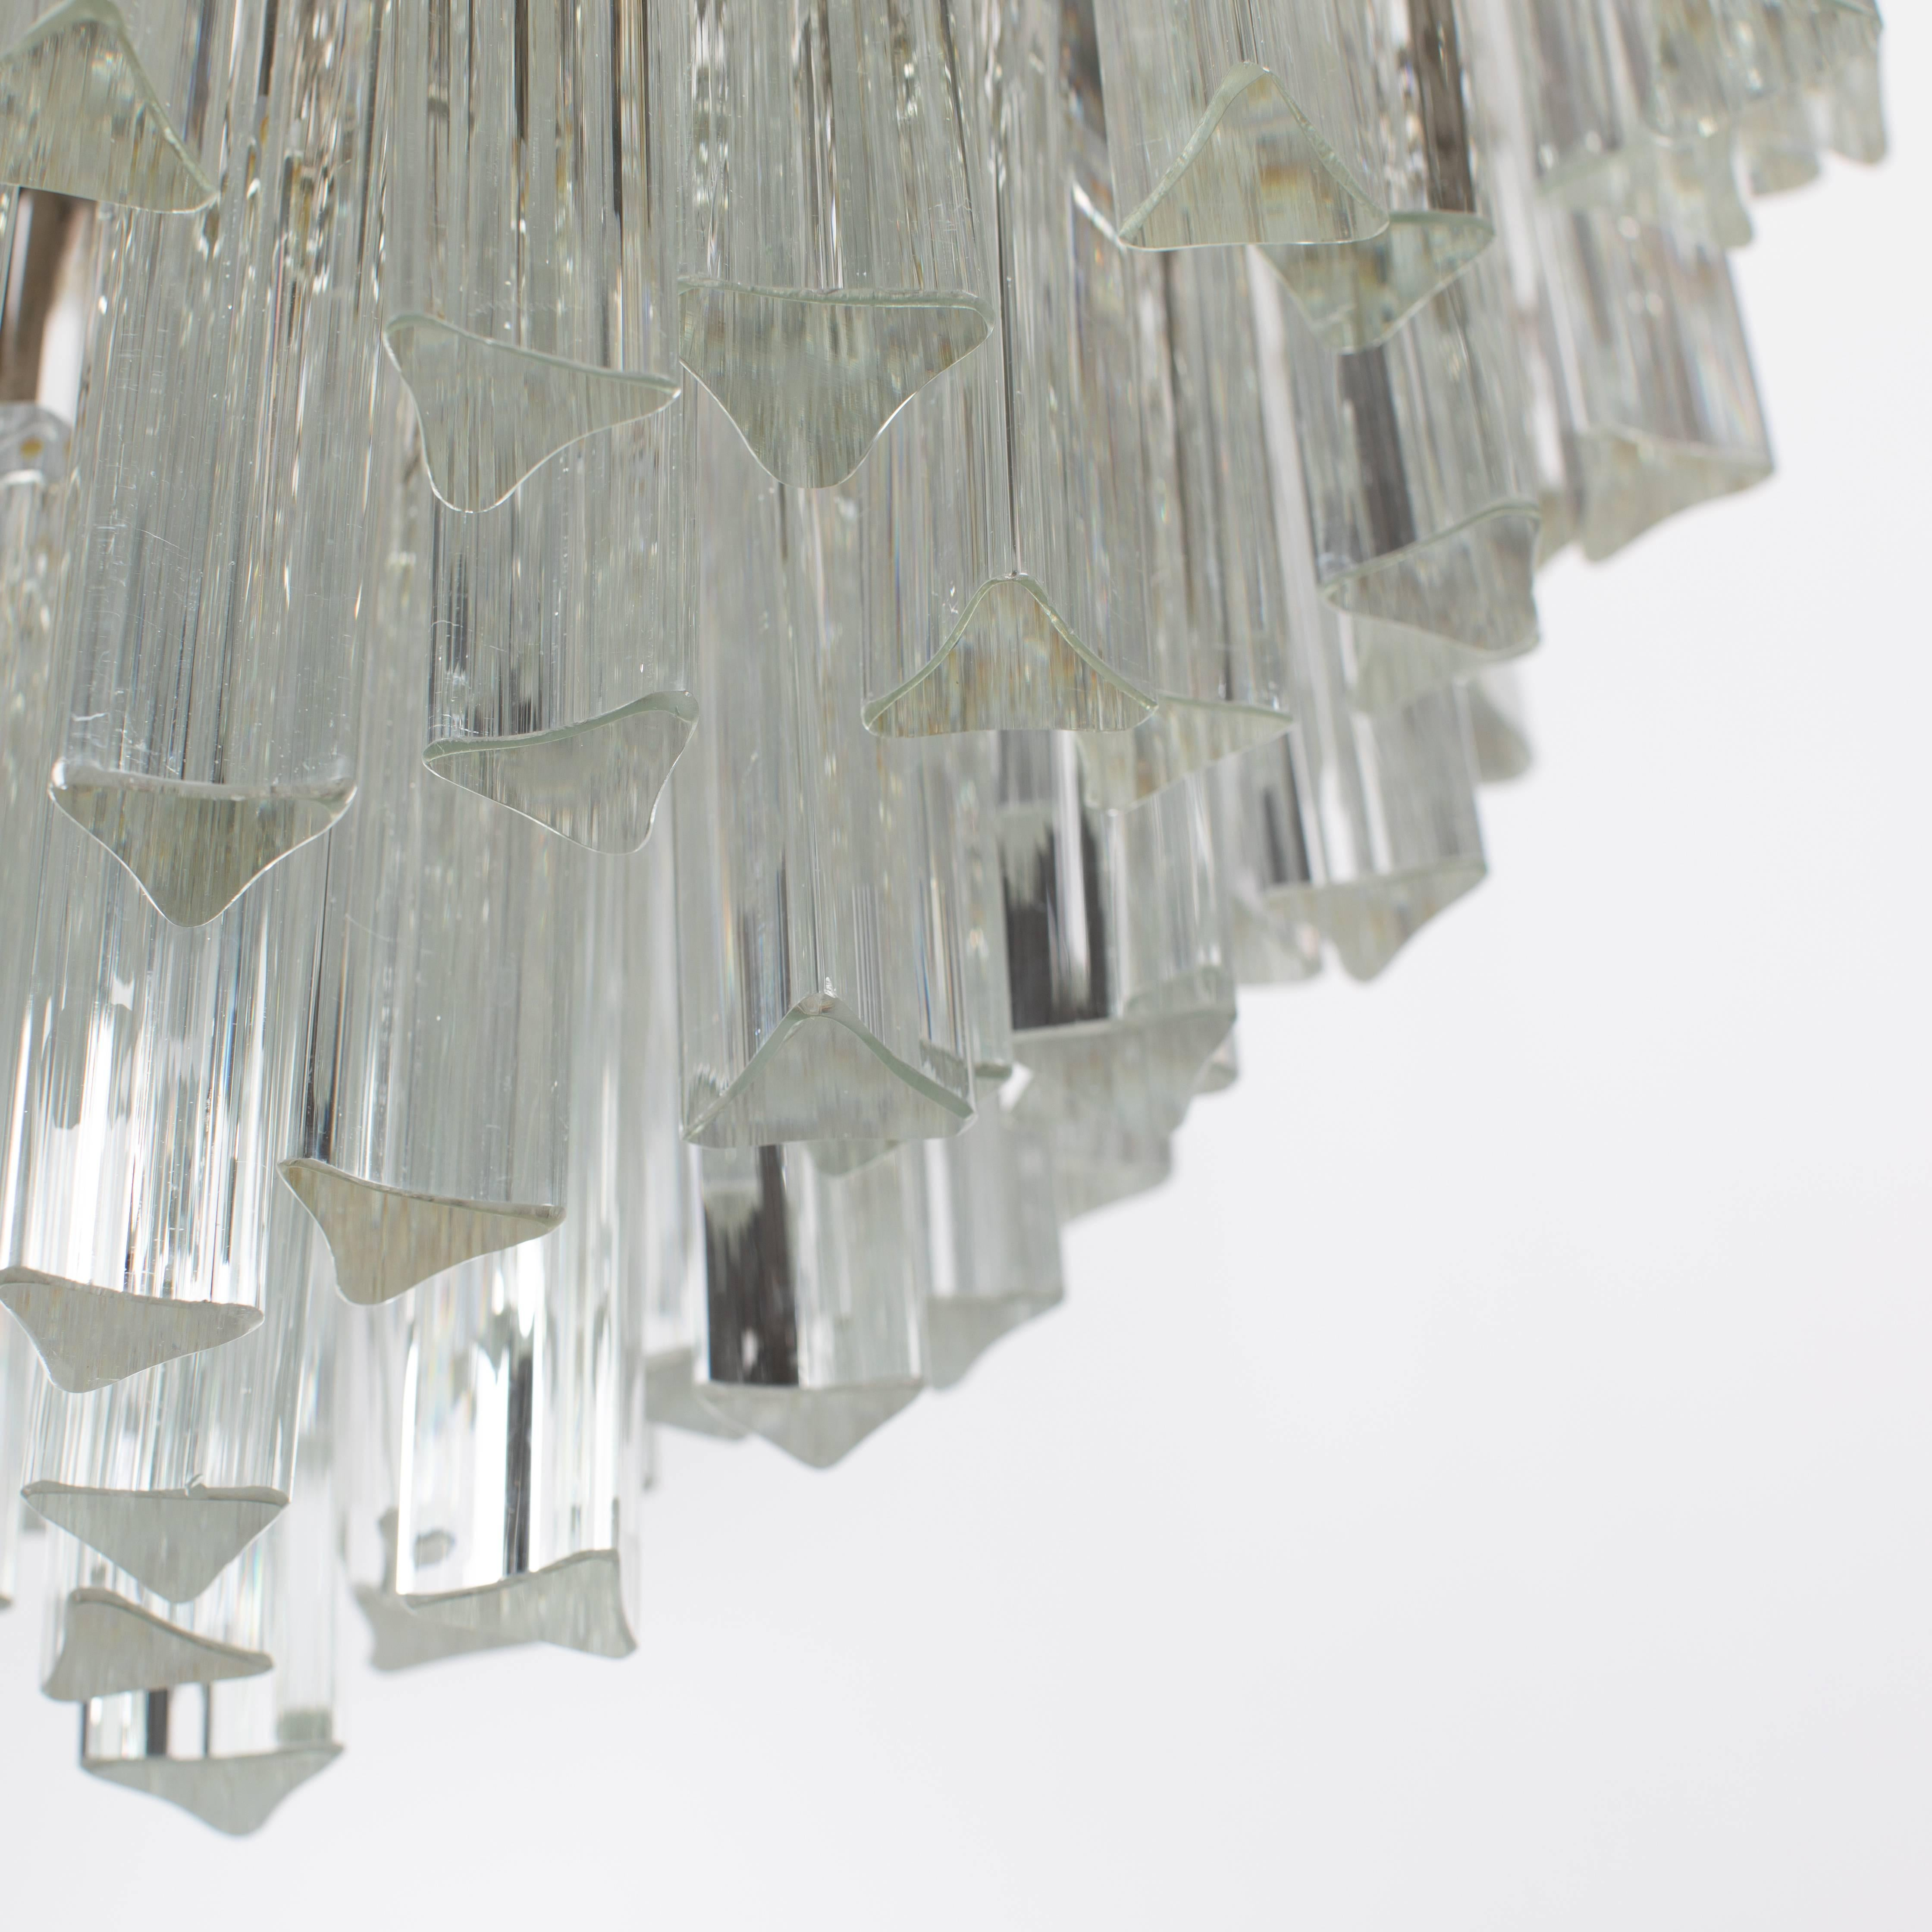 Camer Murano Tiered Prism Crystal Chandelier, Circa 1970S For Sale